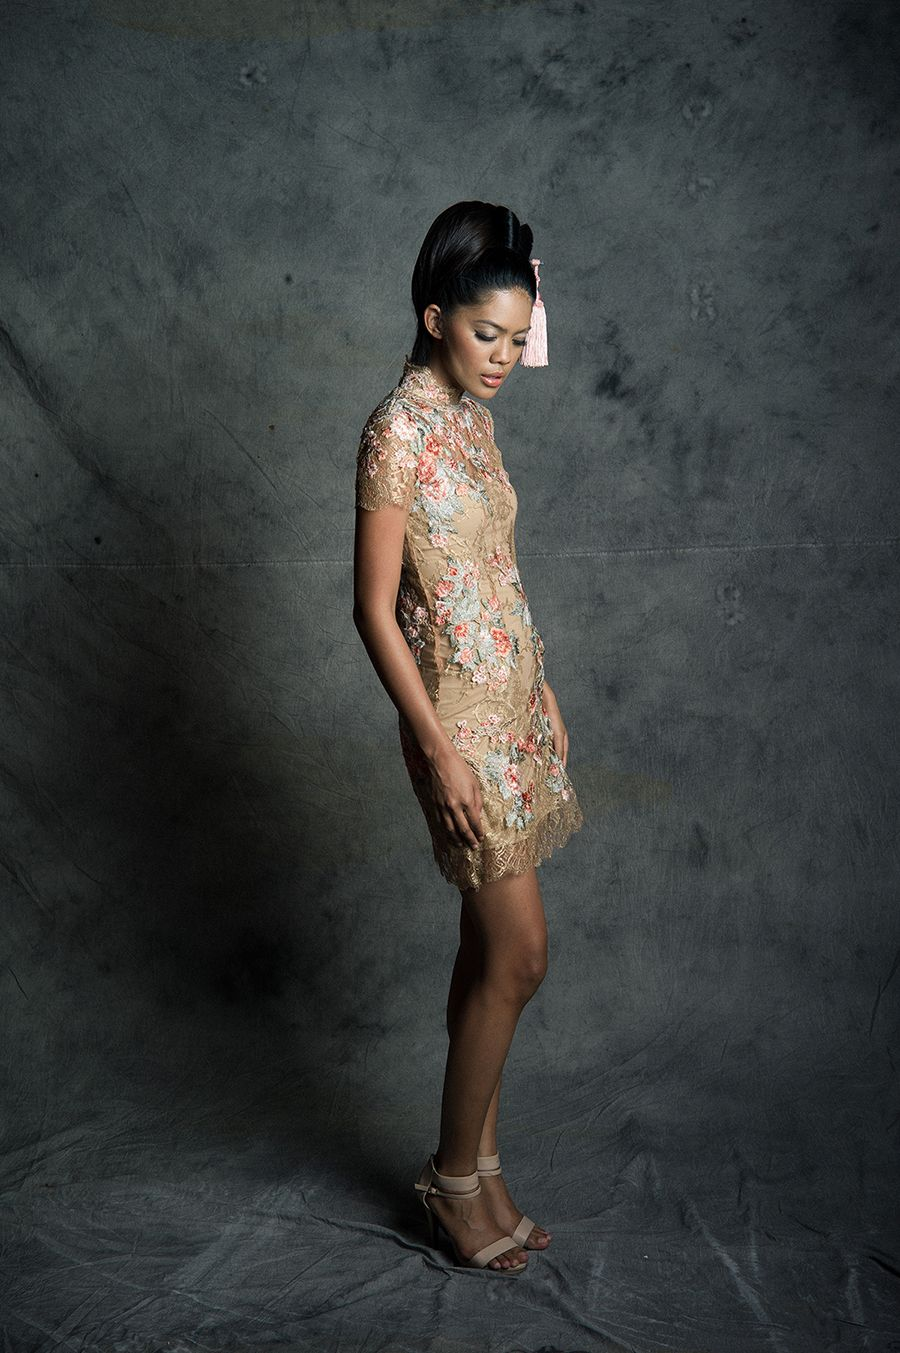 Ok wedding gallery the beauty dress of cheongsam 2013 - East Meets West Light And Airy Wedding Dresses From Cinobi With An Asian Touch